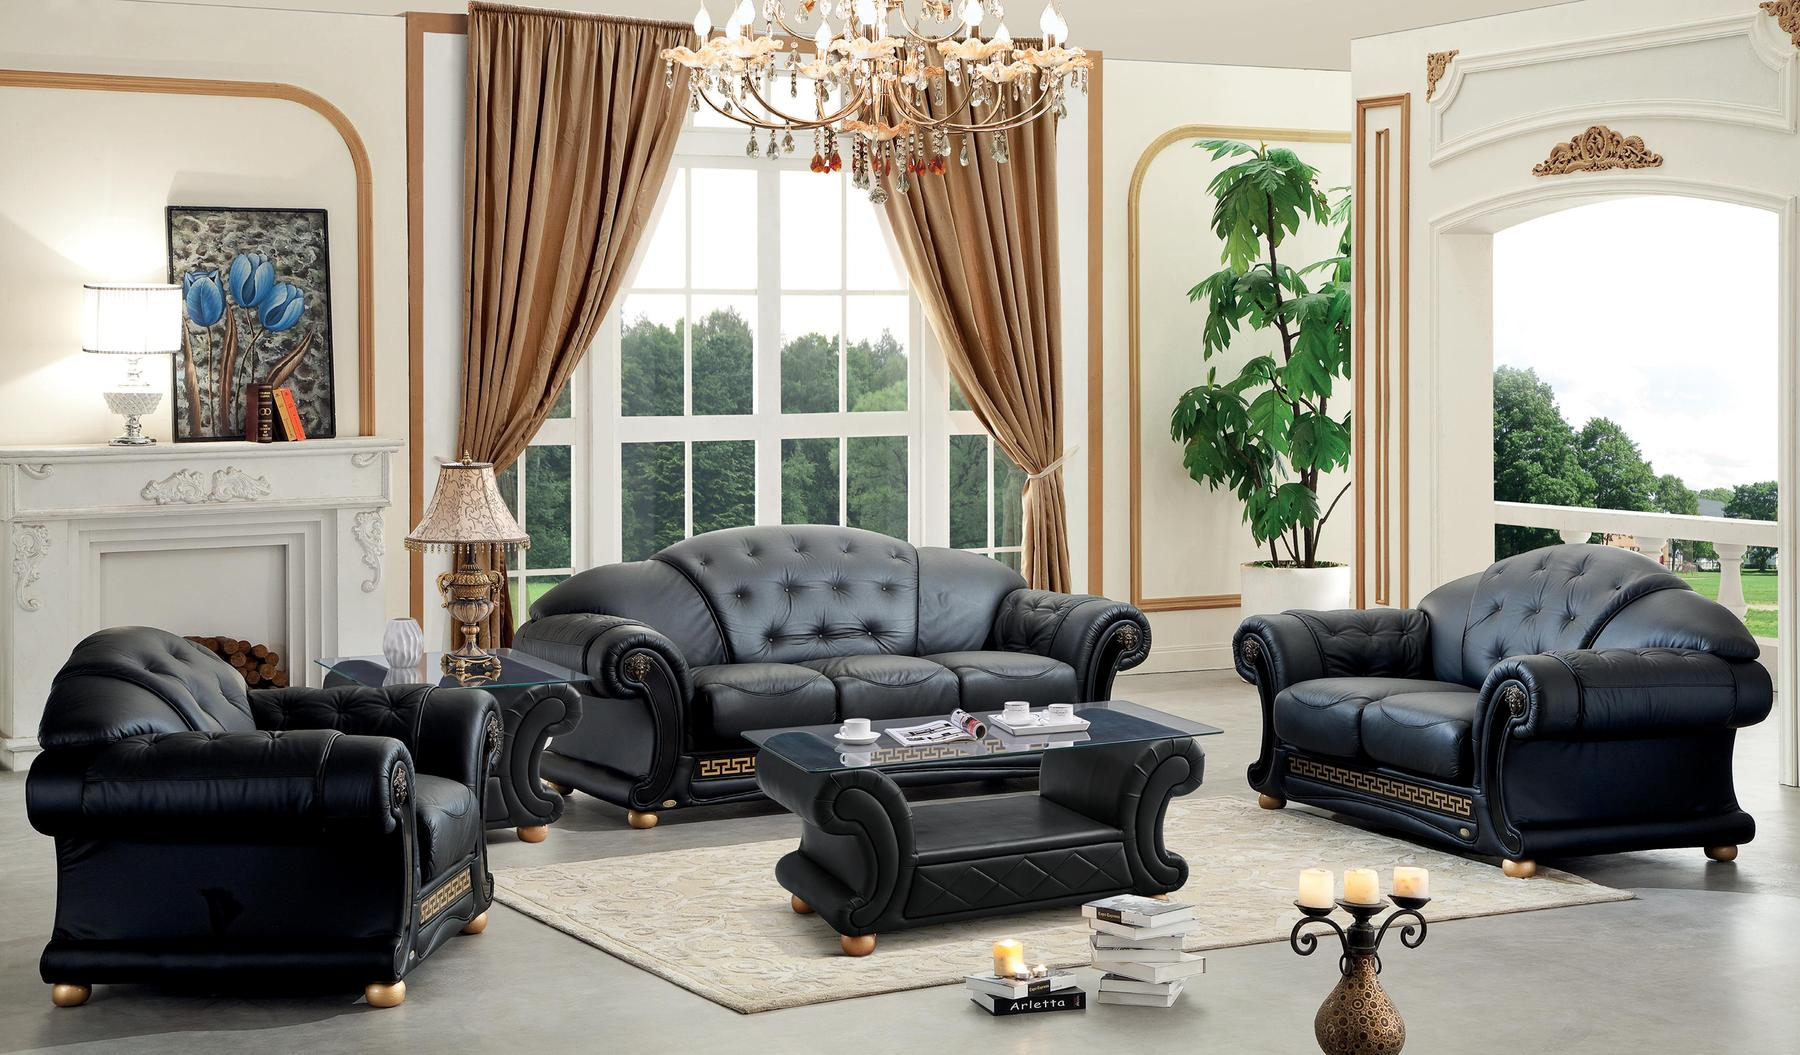 Royal classic interior design of the living room with chic curve sofa and beige curtains